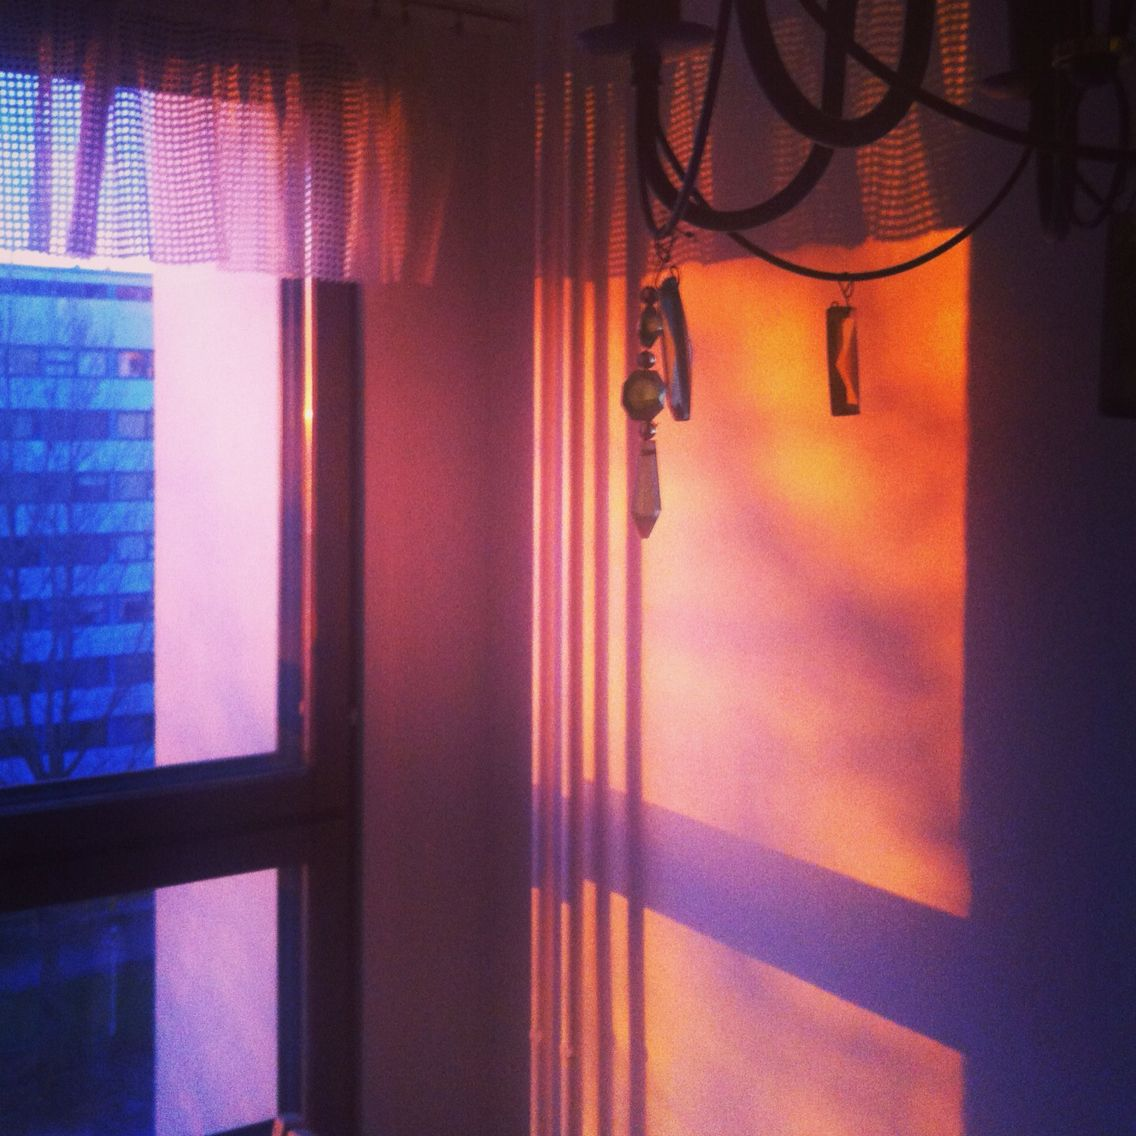 #sunset in my #kitchen